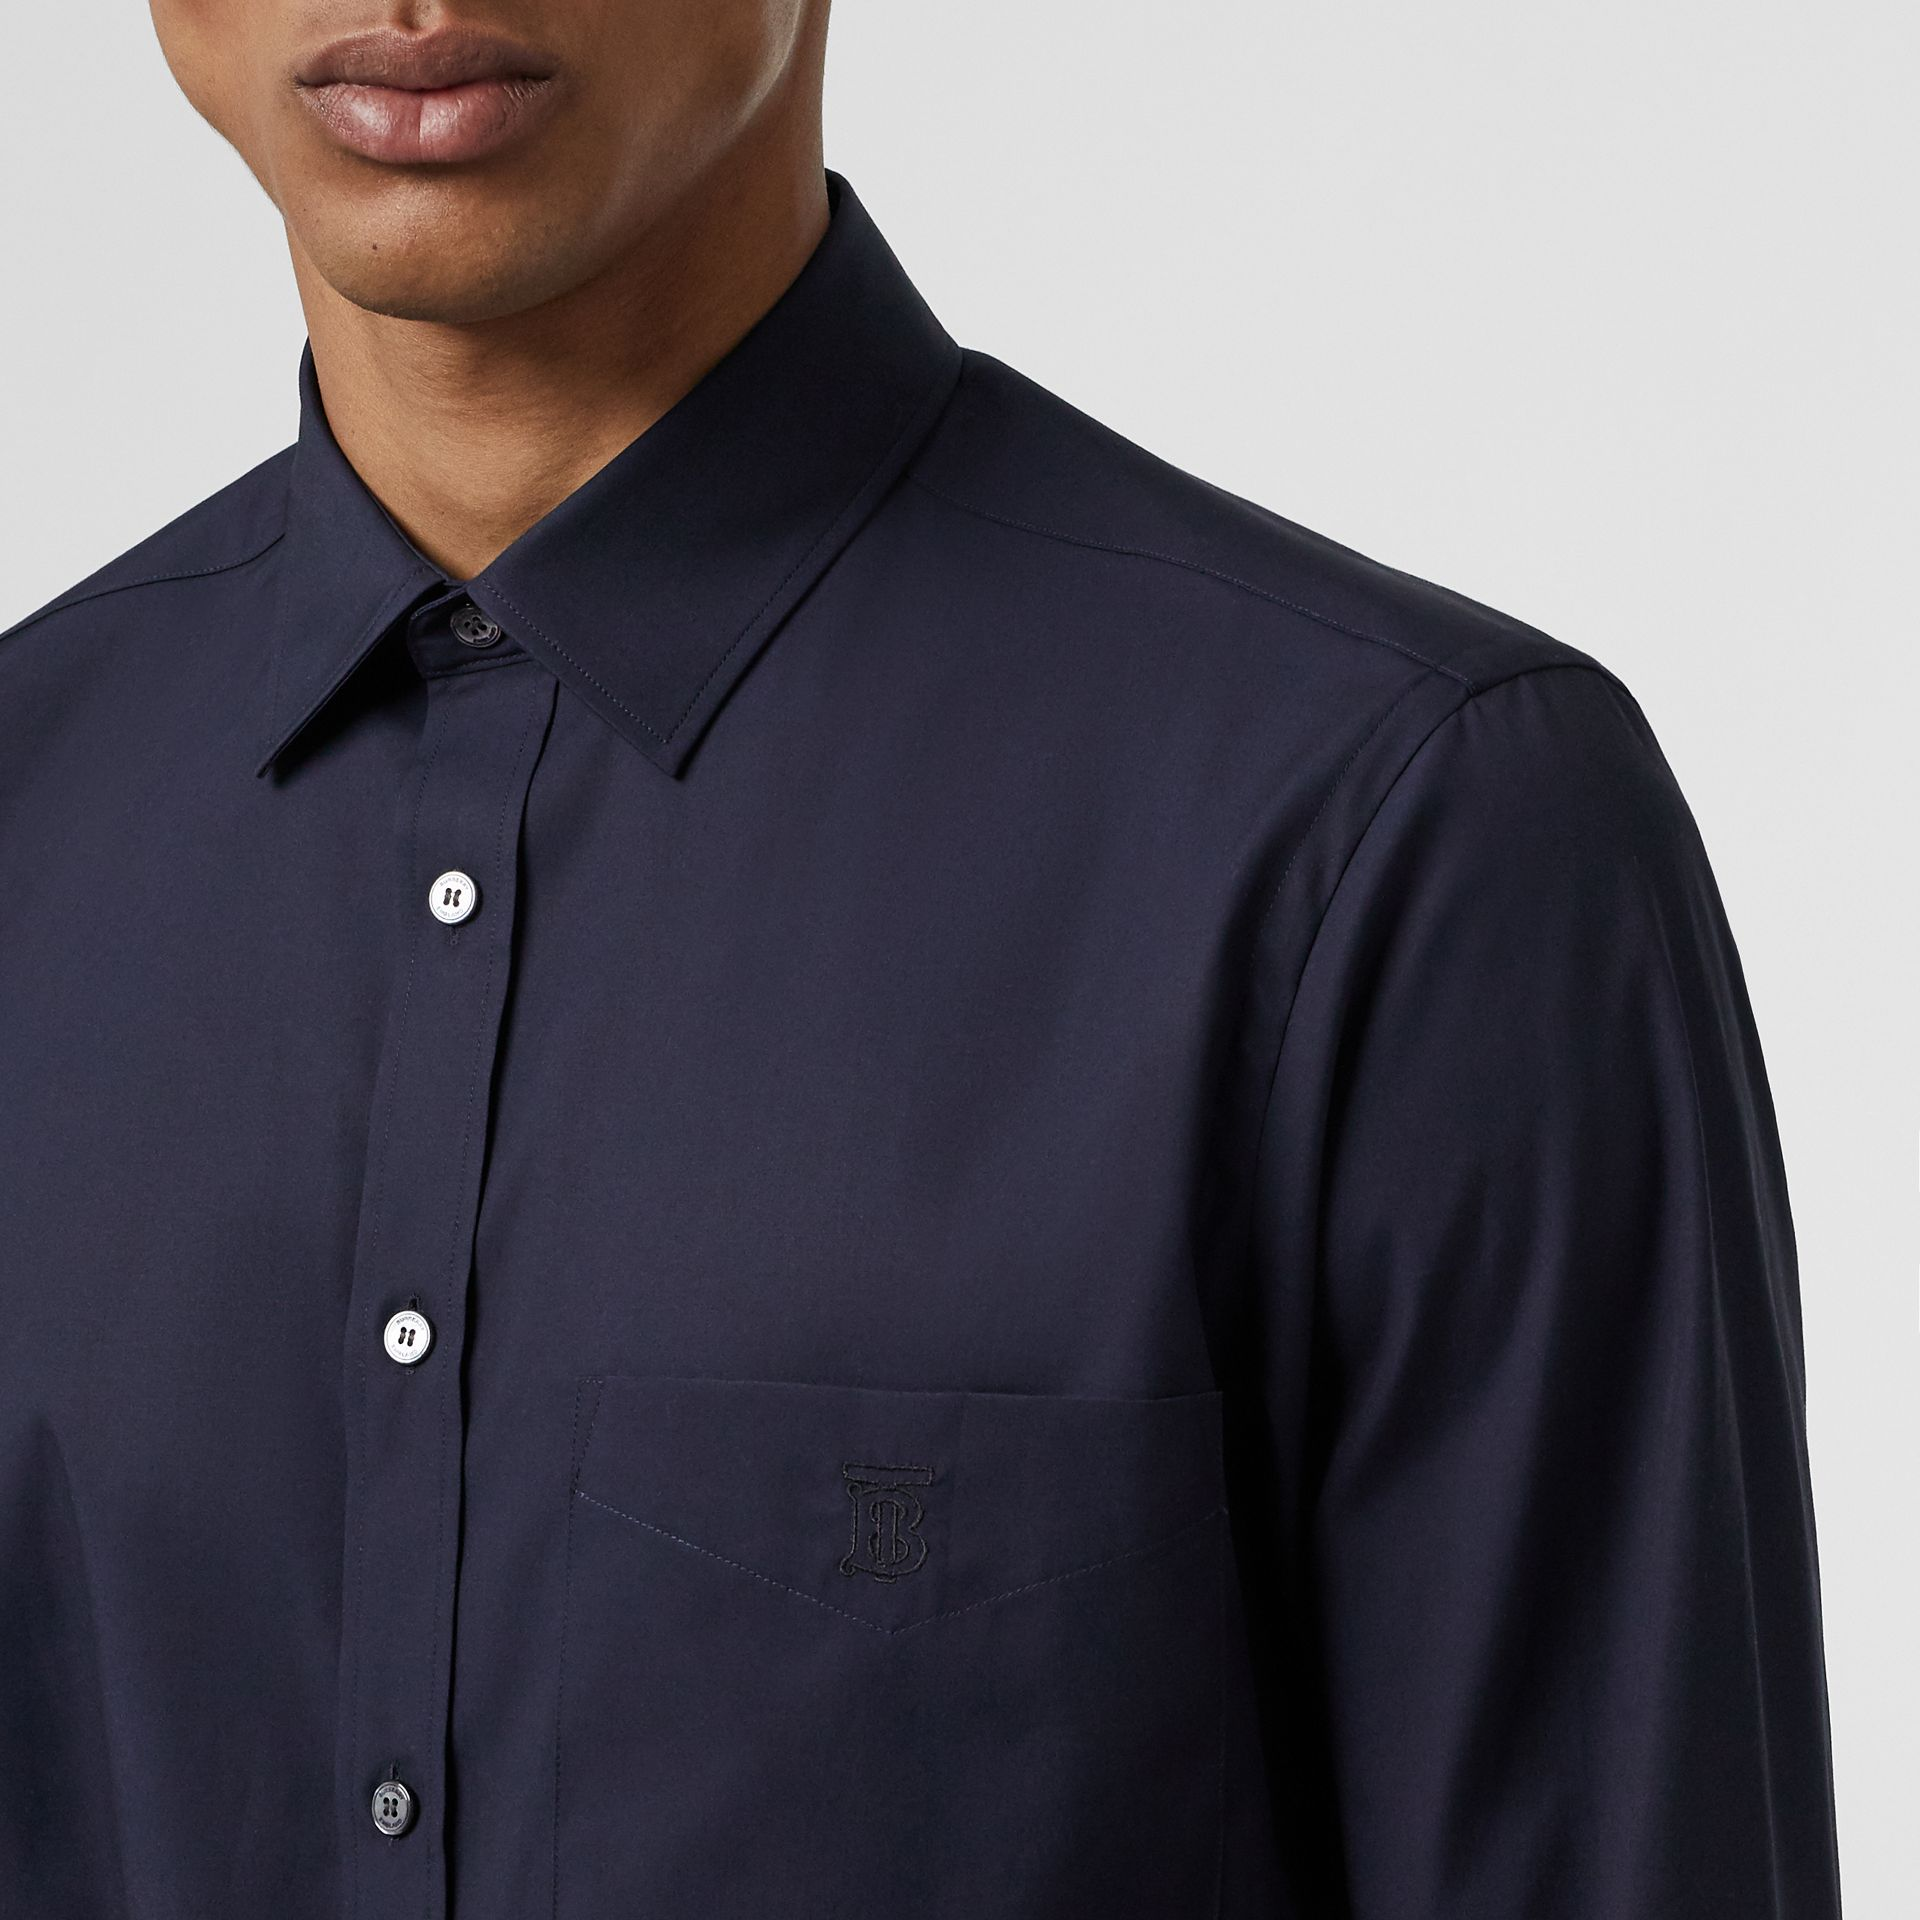 Monogram Motif Stretch Cotton Poplin Shirt in Navy - Men | Burberry - gallery image 1